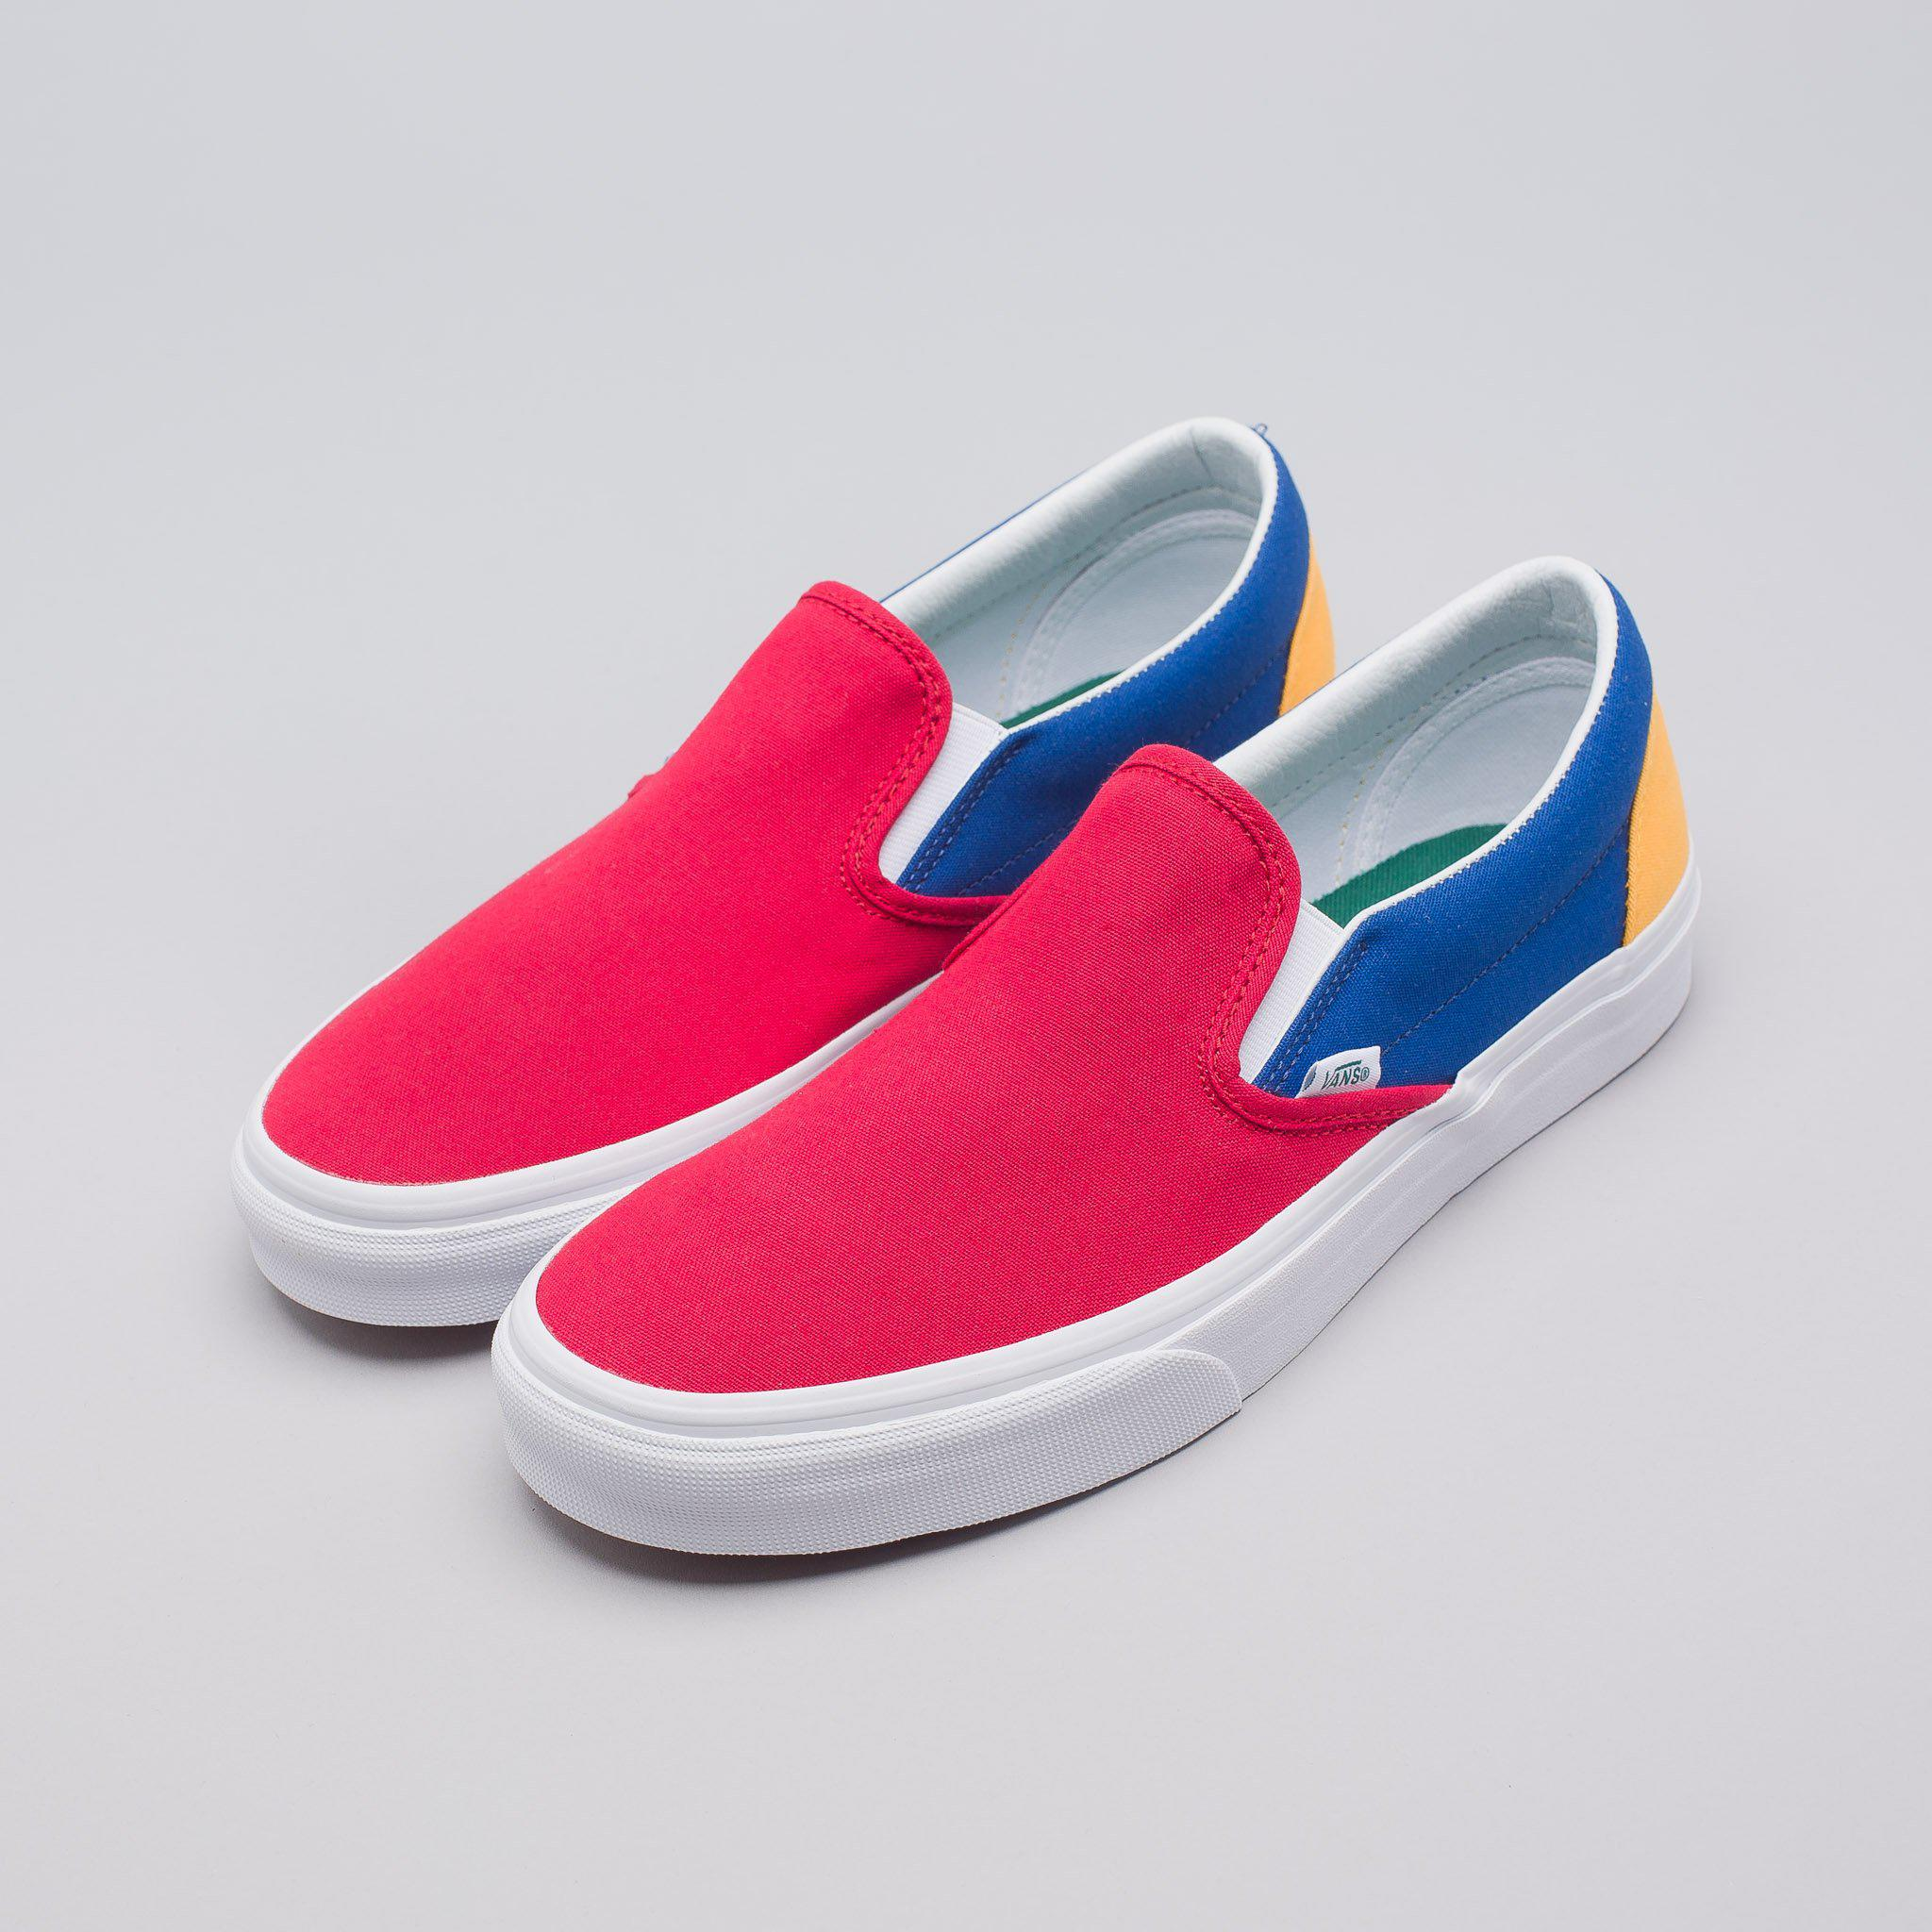 top-rated cheap search for clearance new release Yacht Club Classic Slip-on In Red/blue/yellow